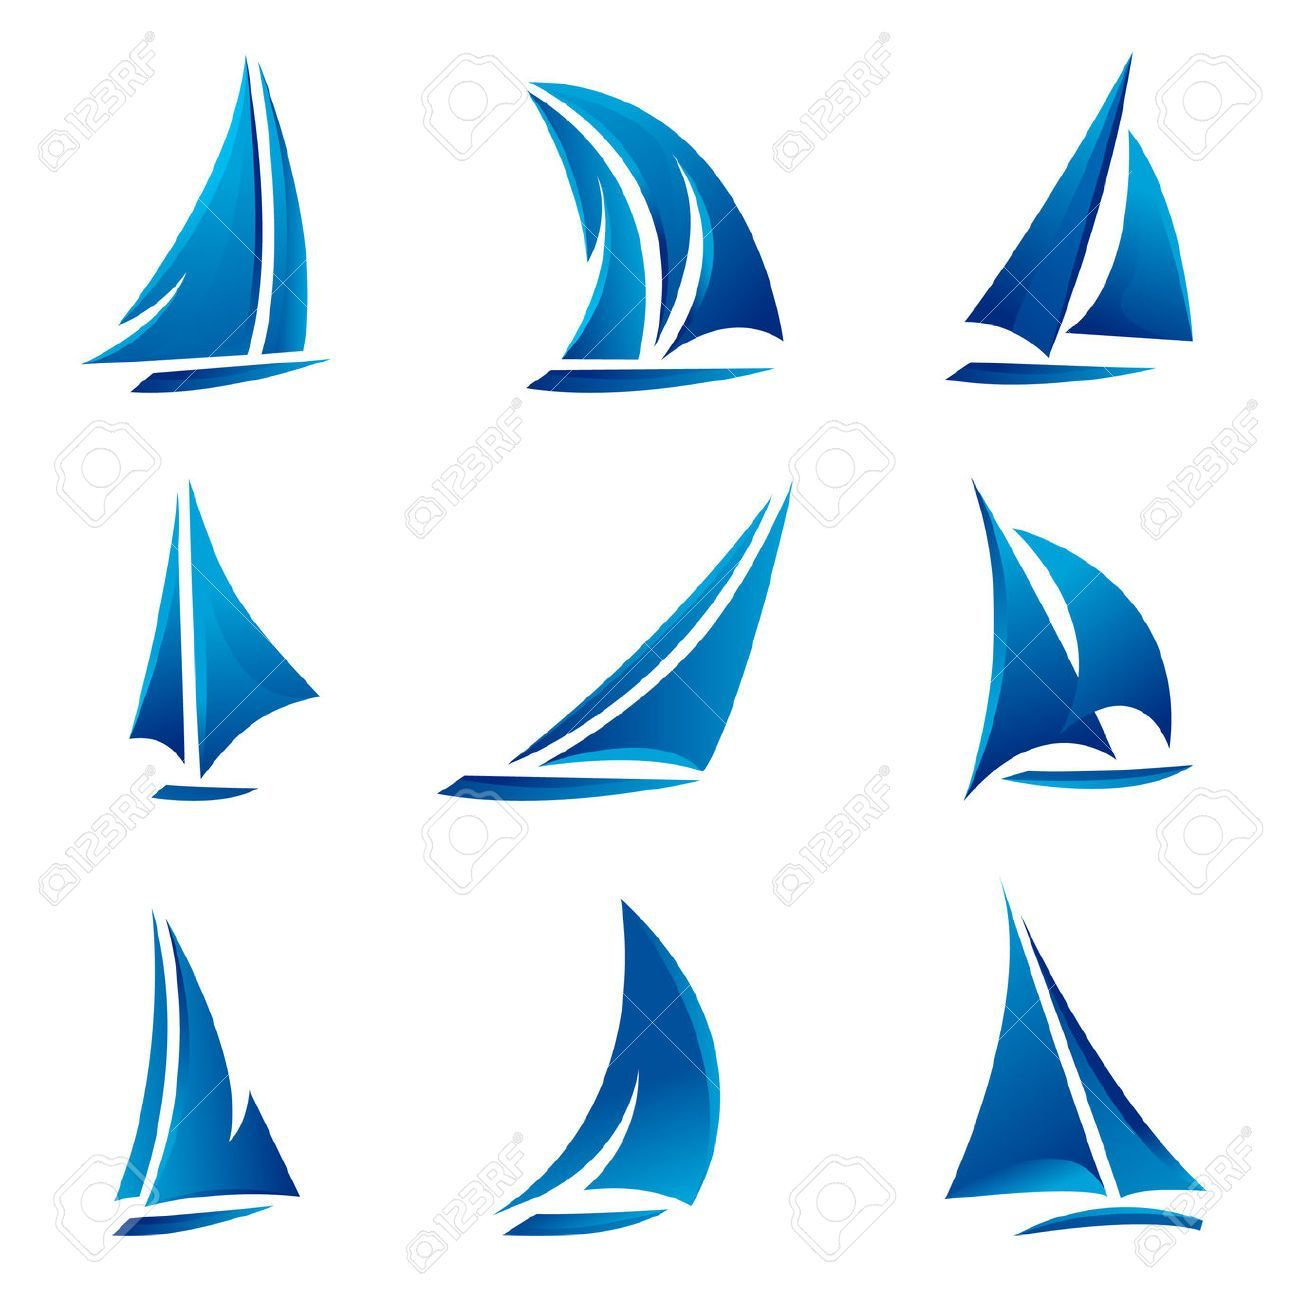 hight resolution of sailboat stock vector illustration and royalty free sailboat clipart yachttattoo